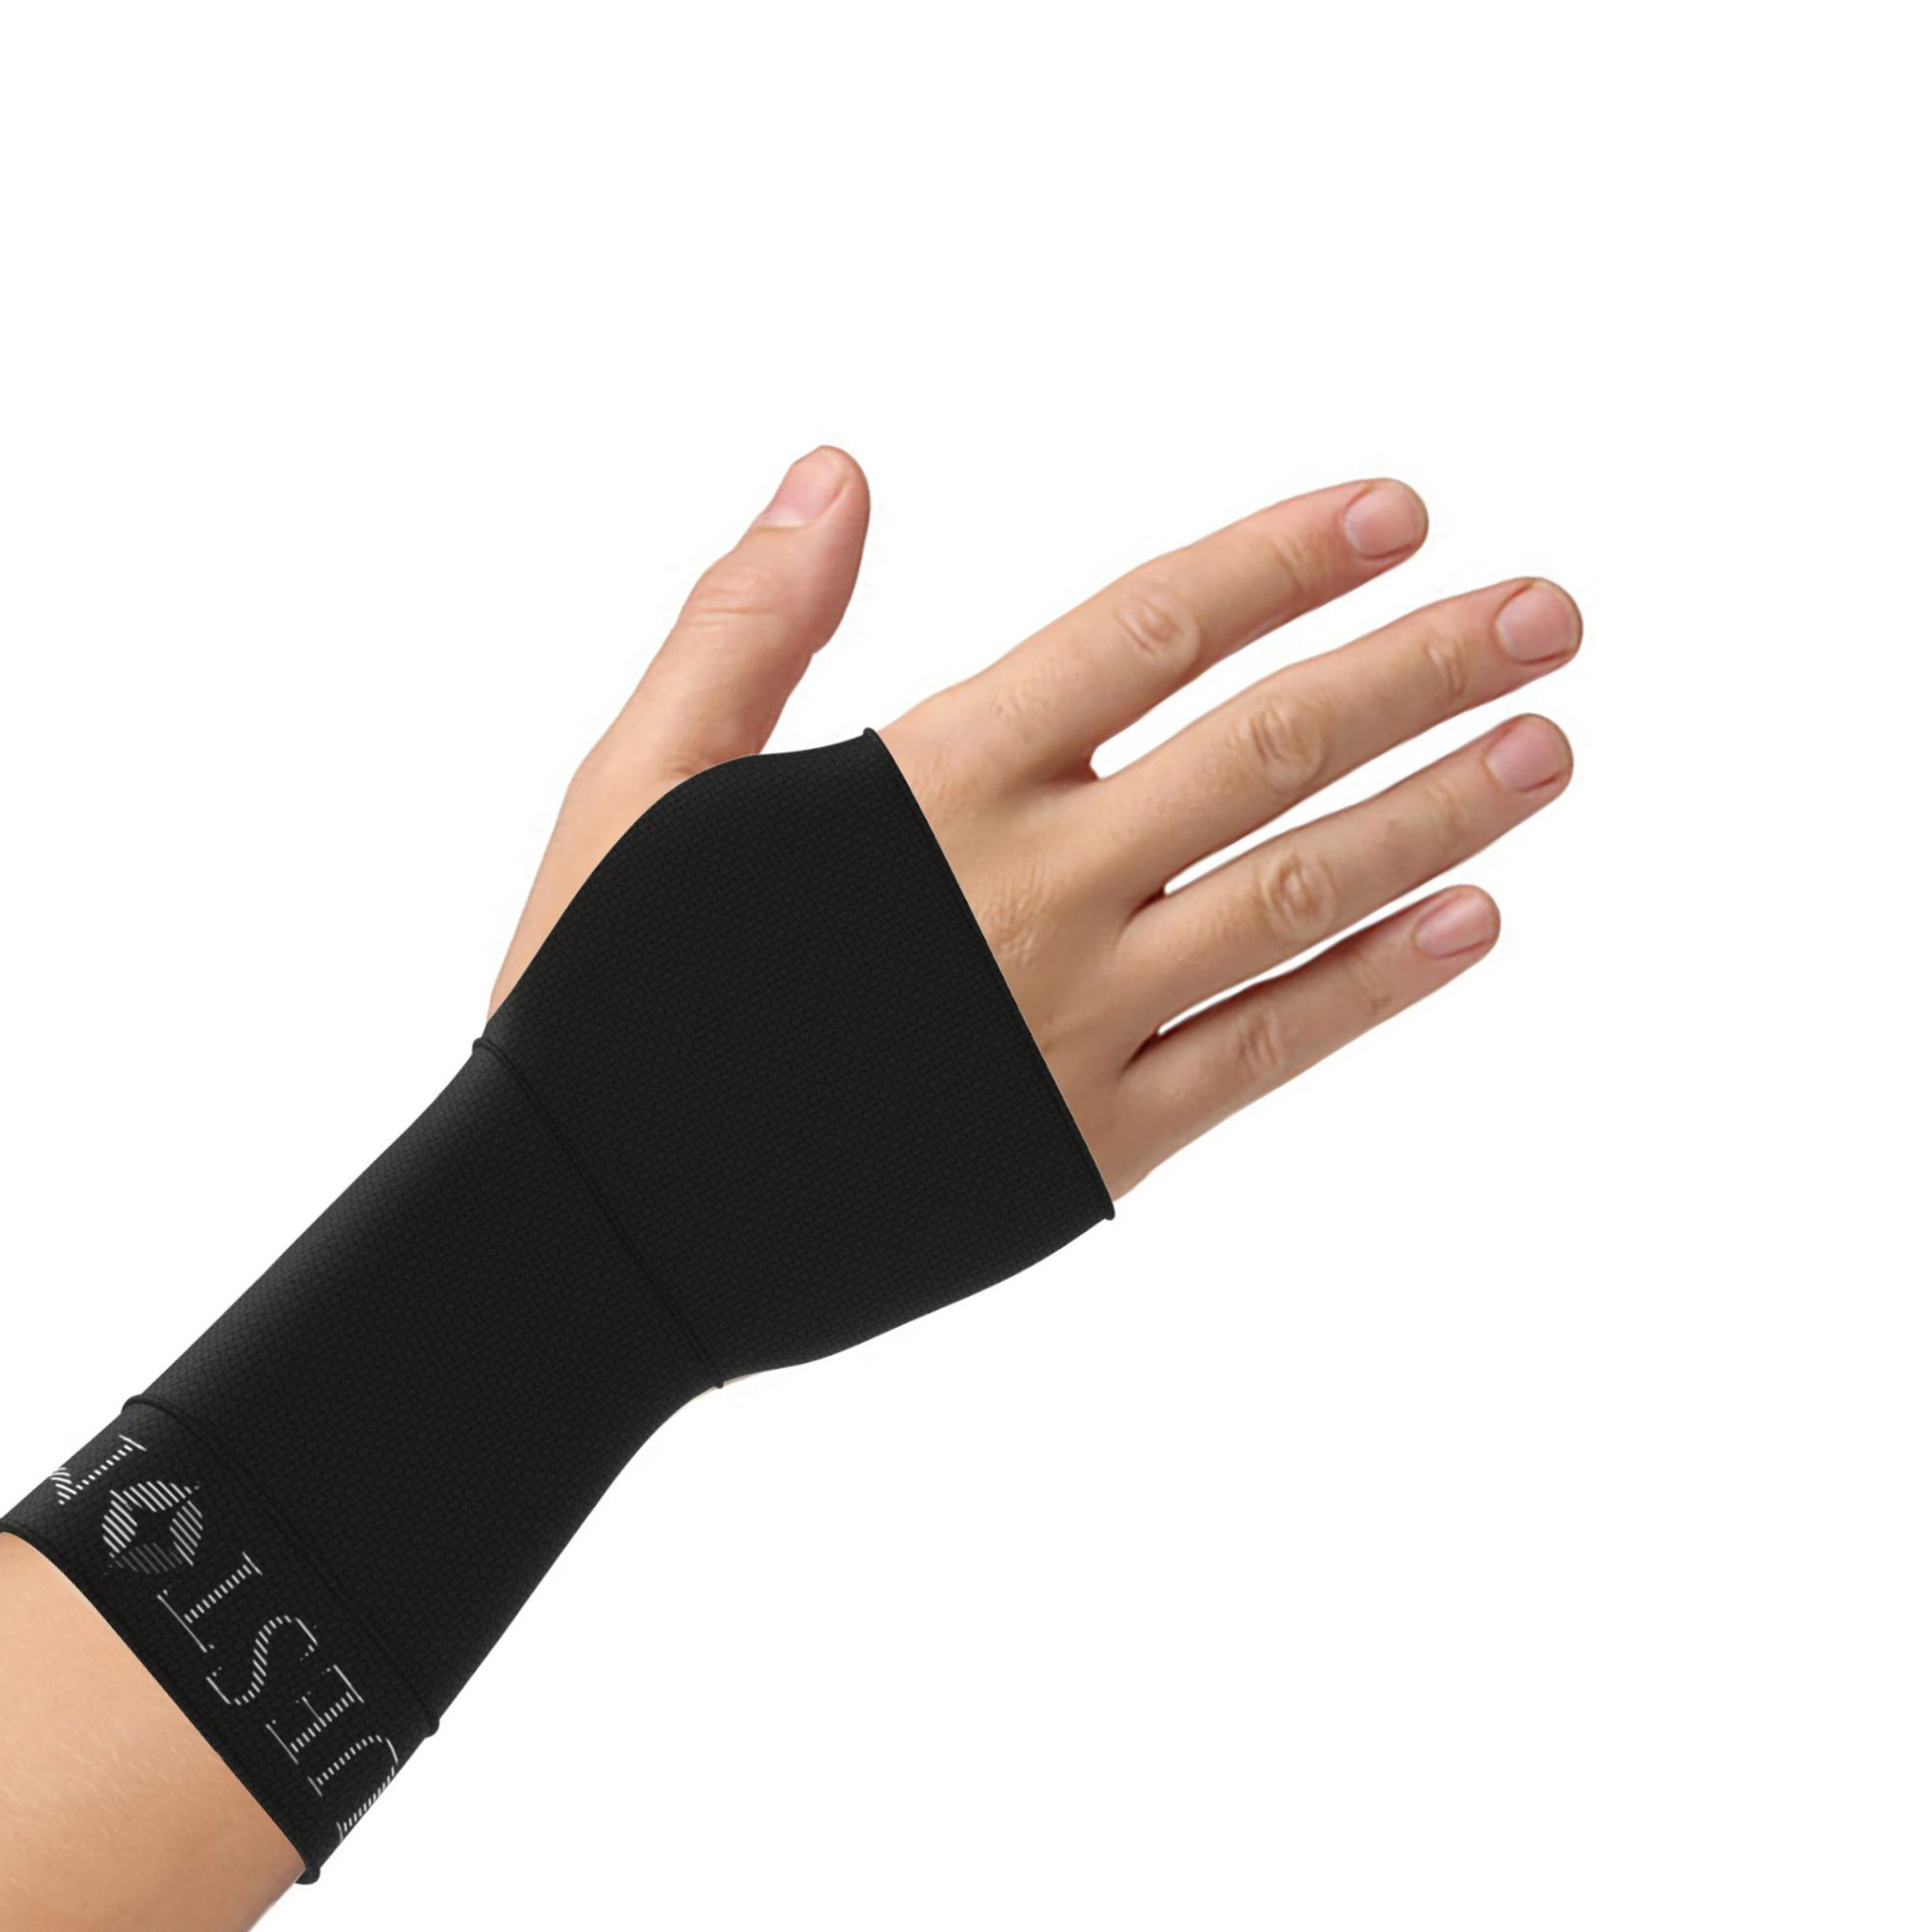 Bluestone Copper Wrist Support Compression Brace-Natural Pain Relief, Unisex, Anti-Microbial, Odor Control-For Yoga, Sports, Gym and More by (Small)